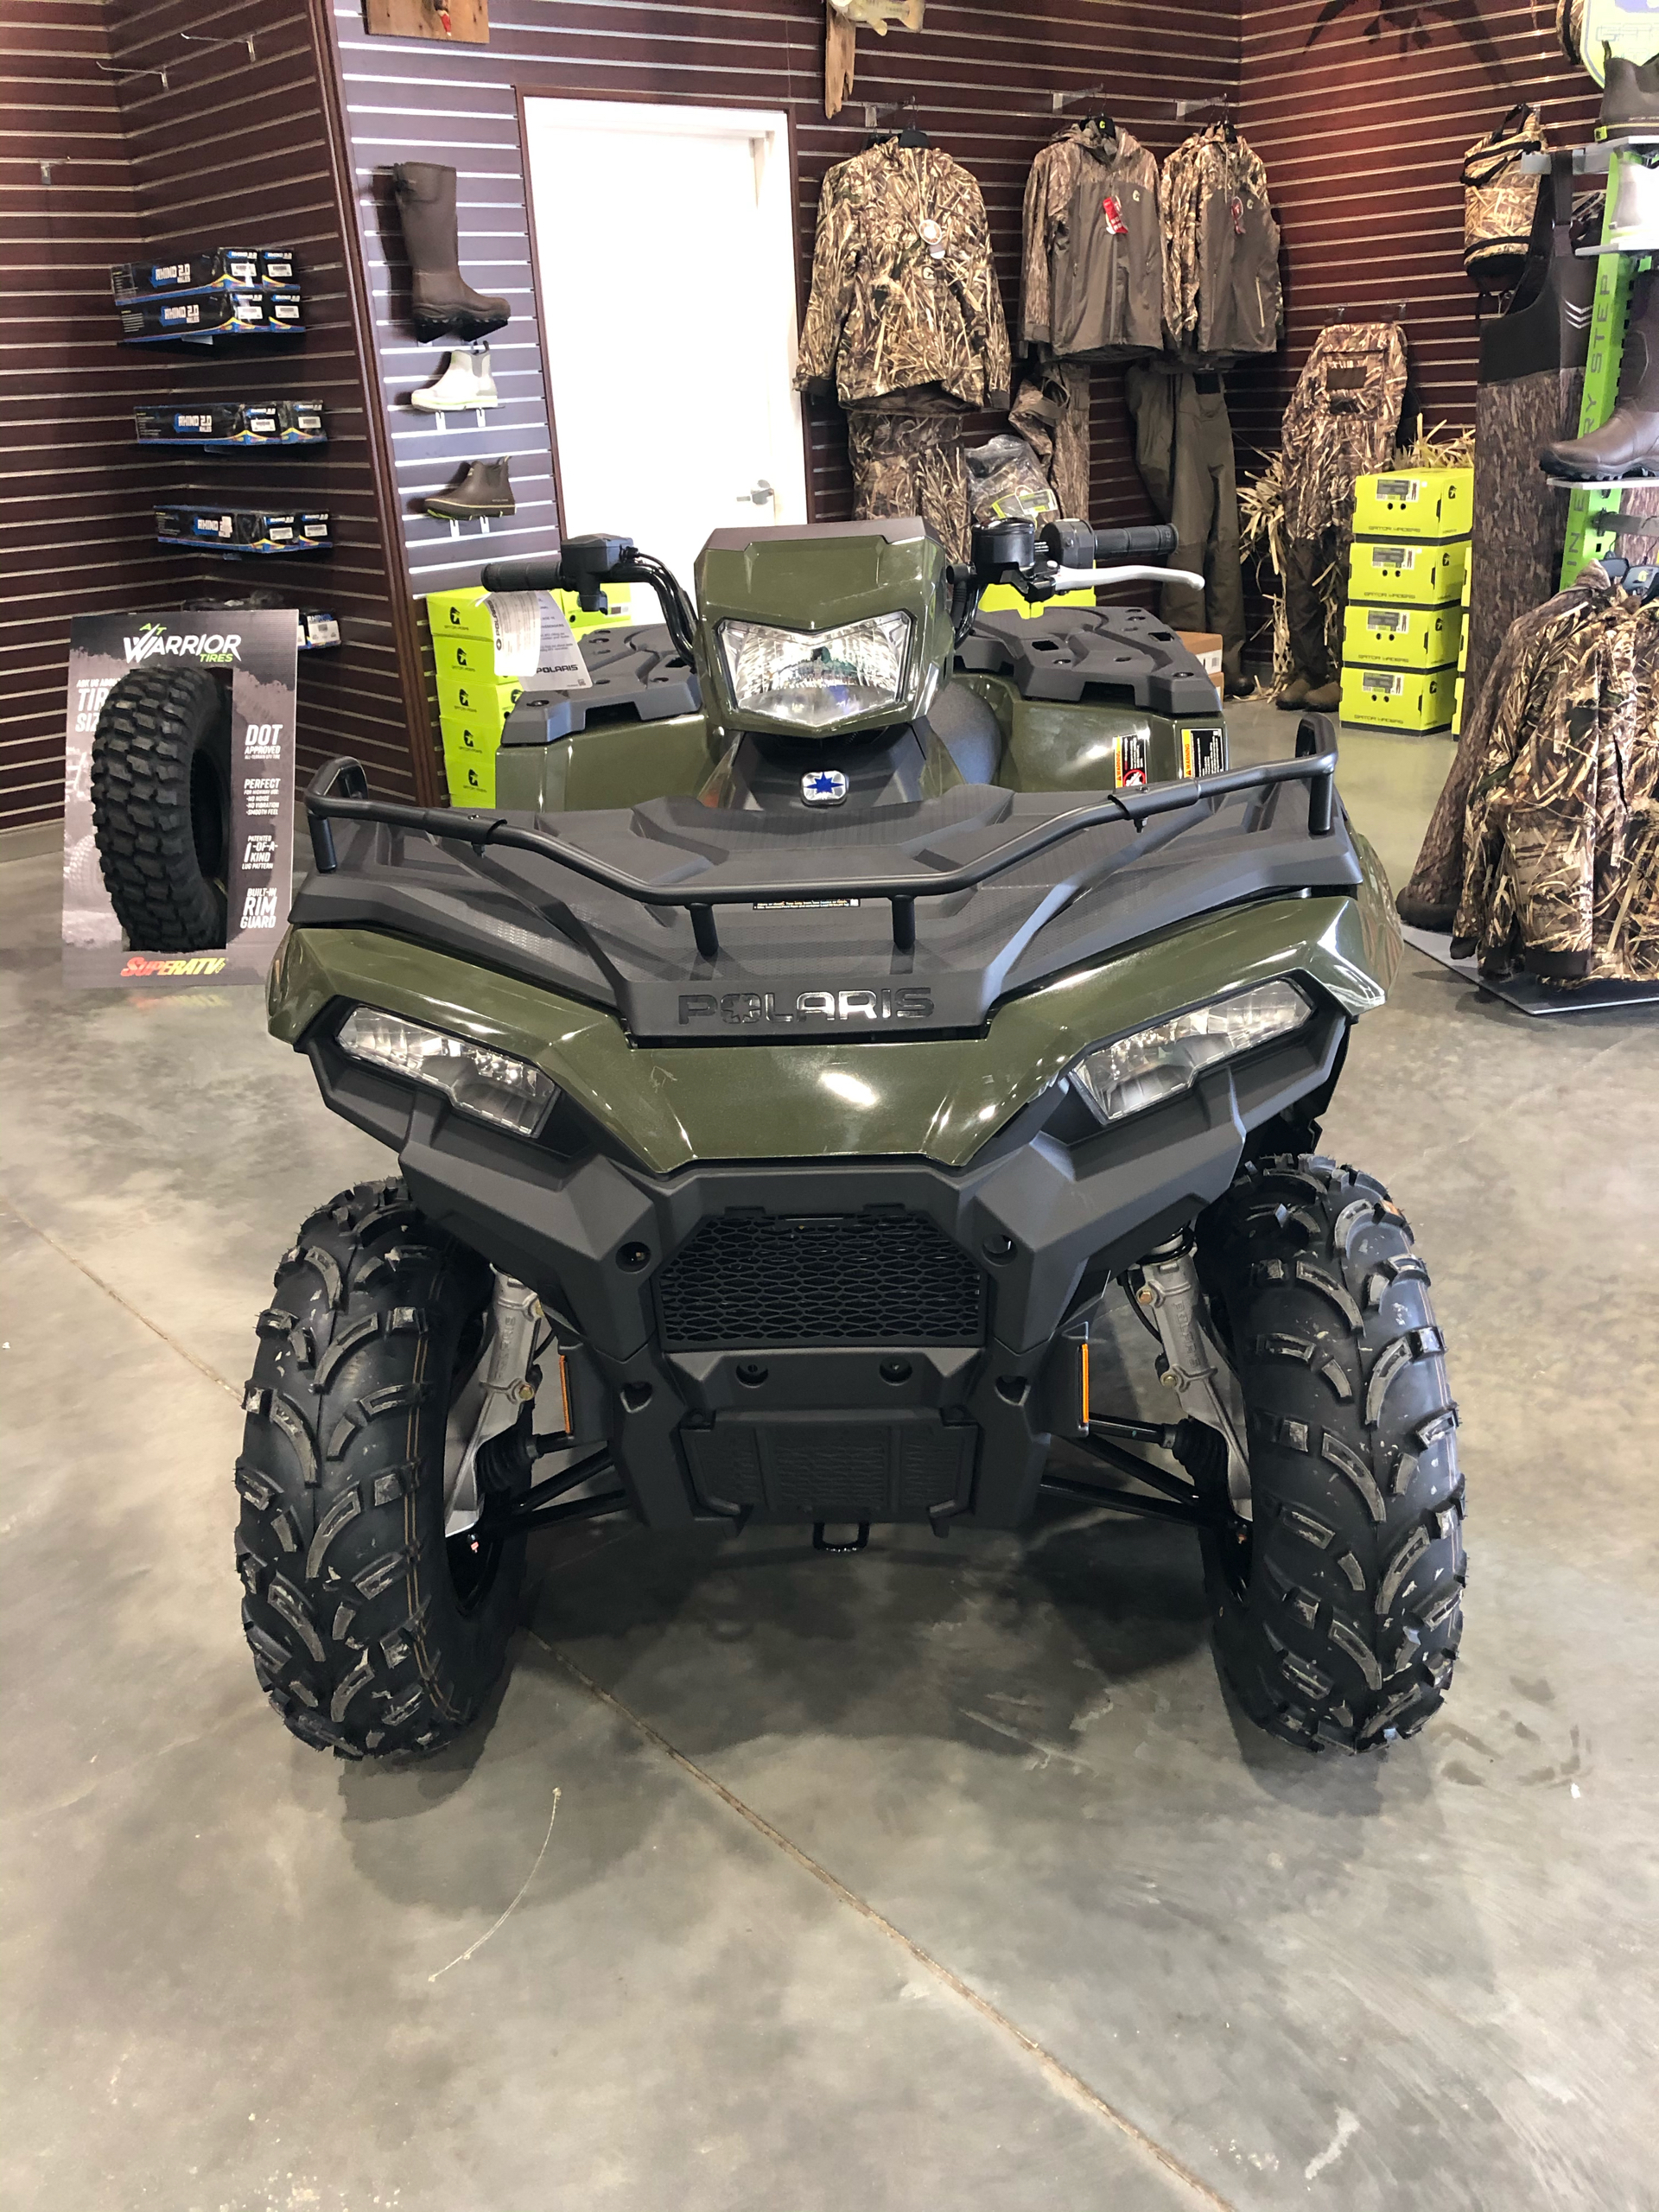 2021 Polaris Sportsman 450 H.O. in Conway, Arkansas - Photo 2